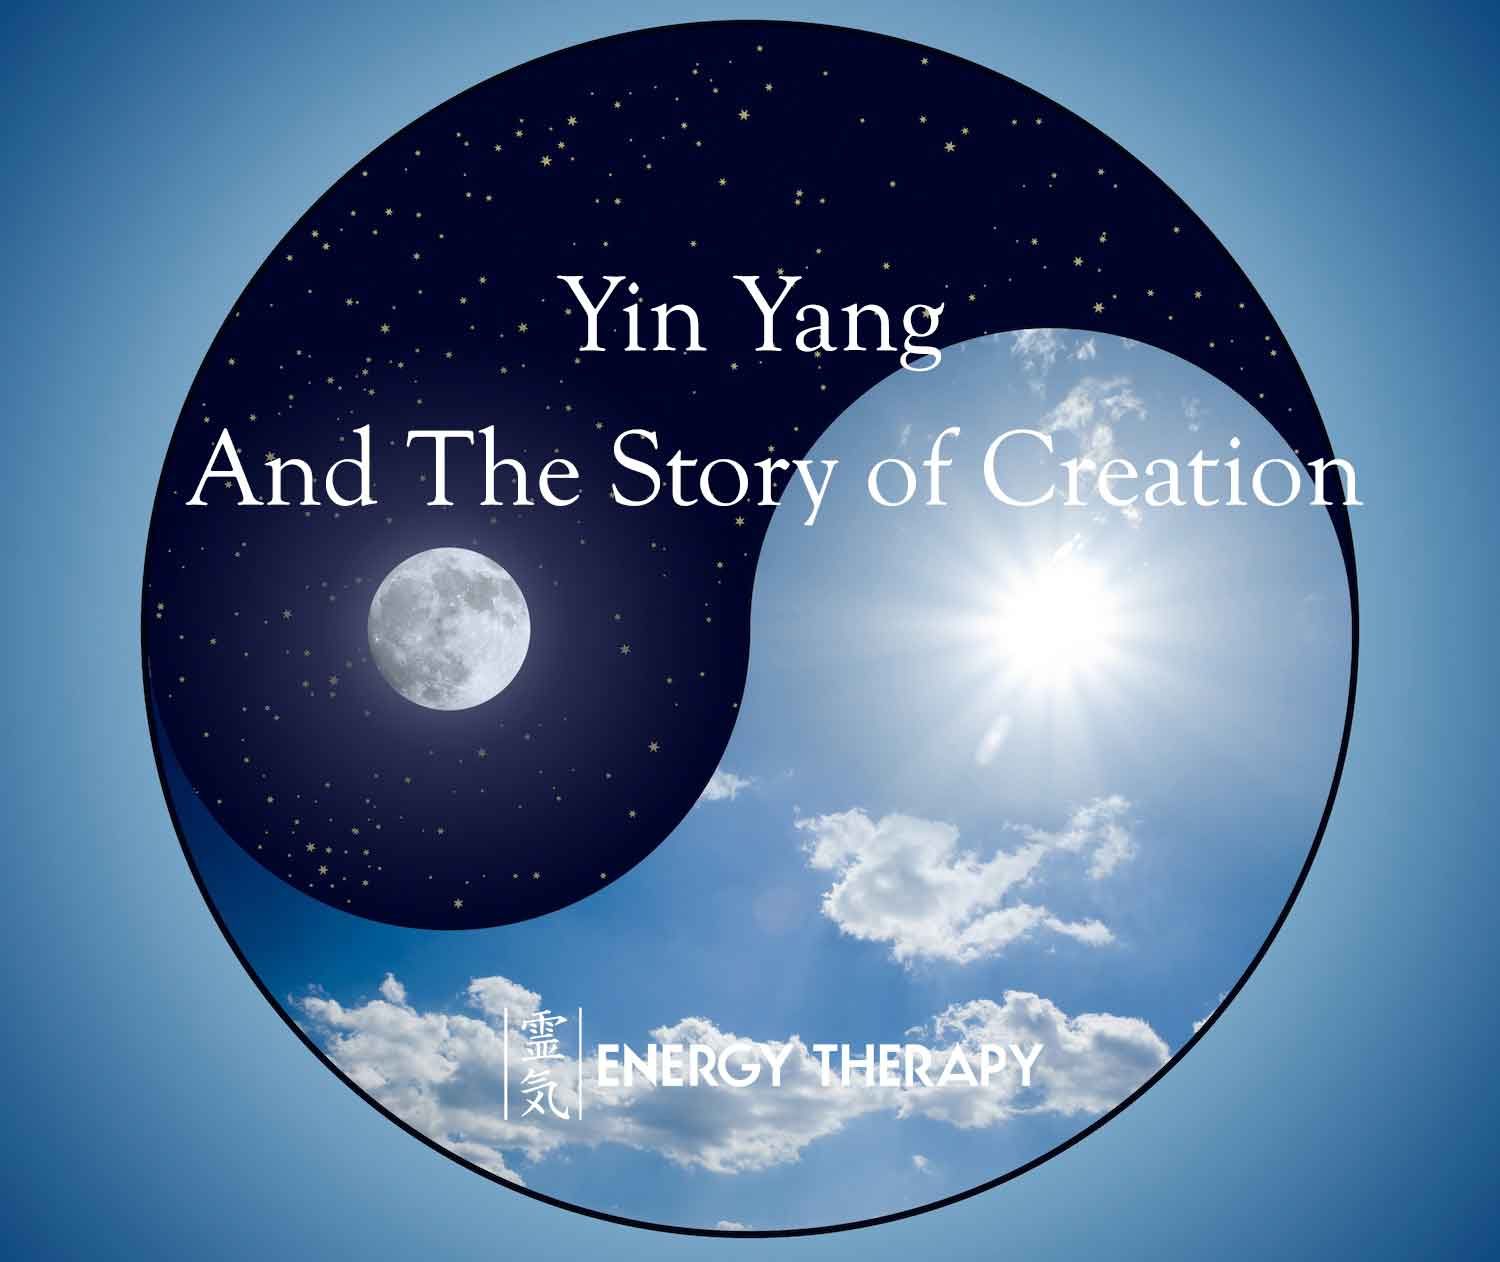 yin yang and the story of creation